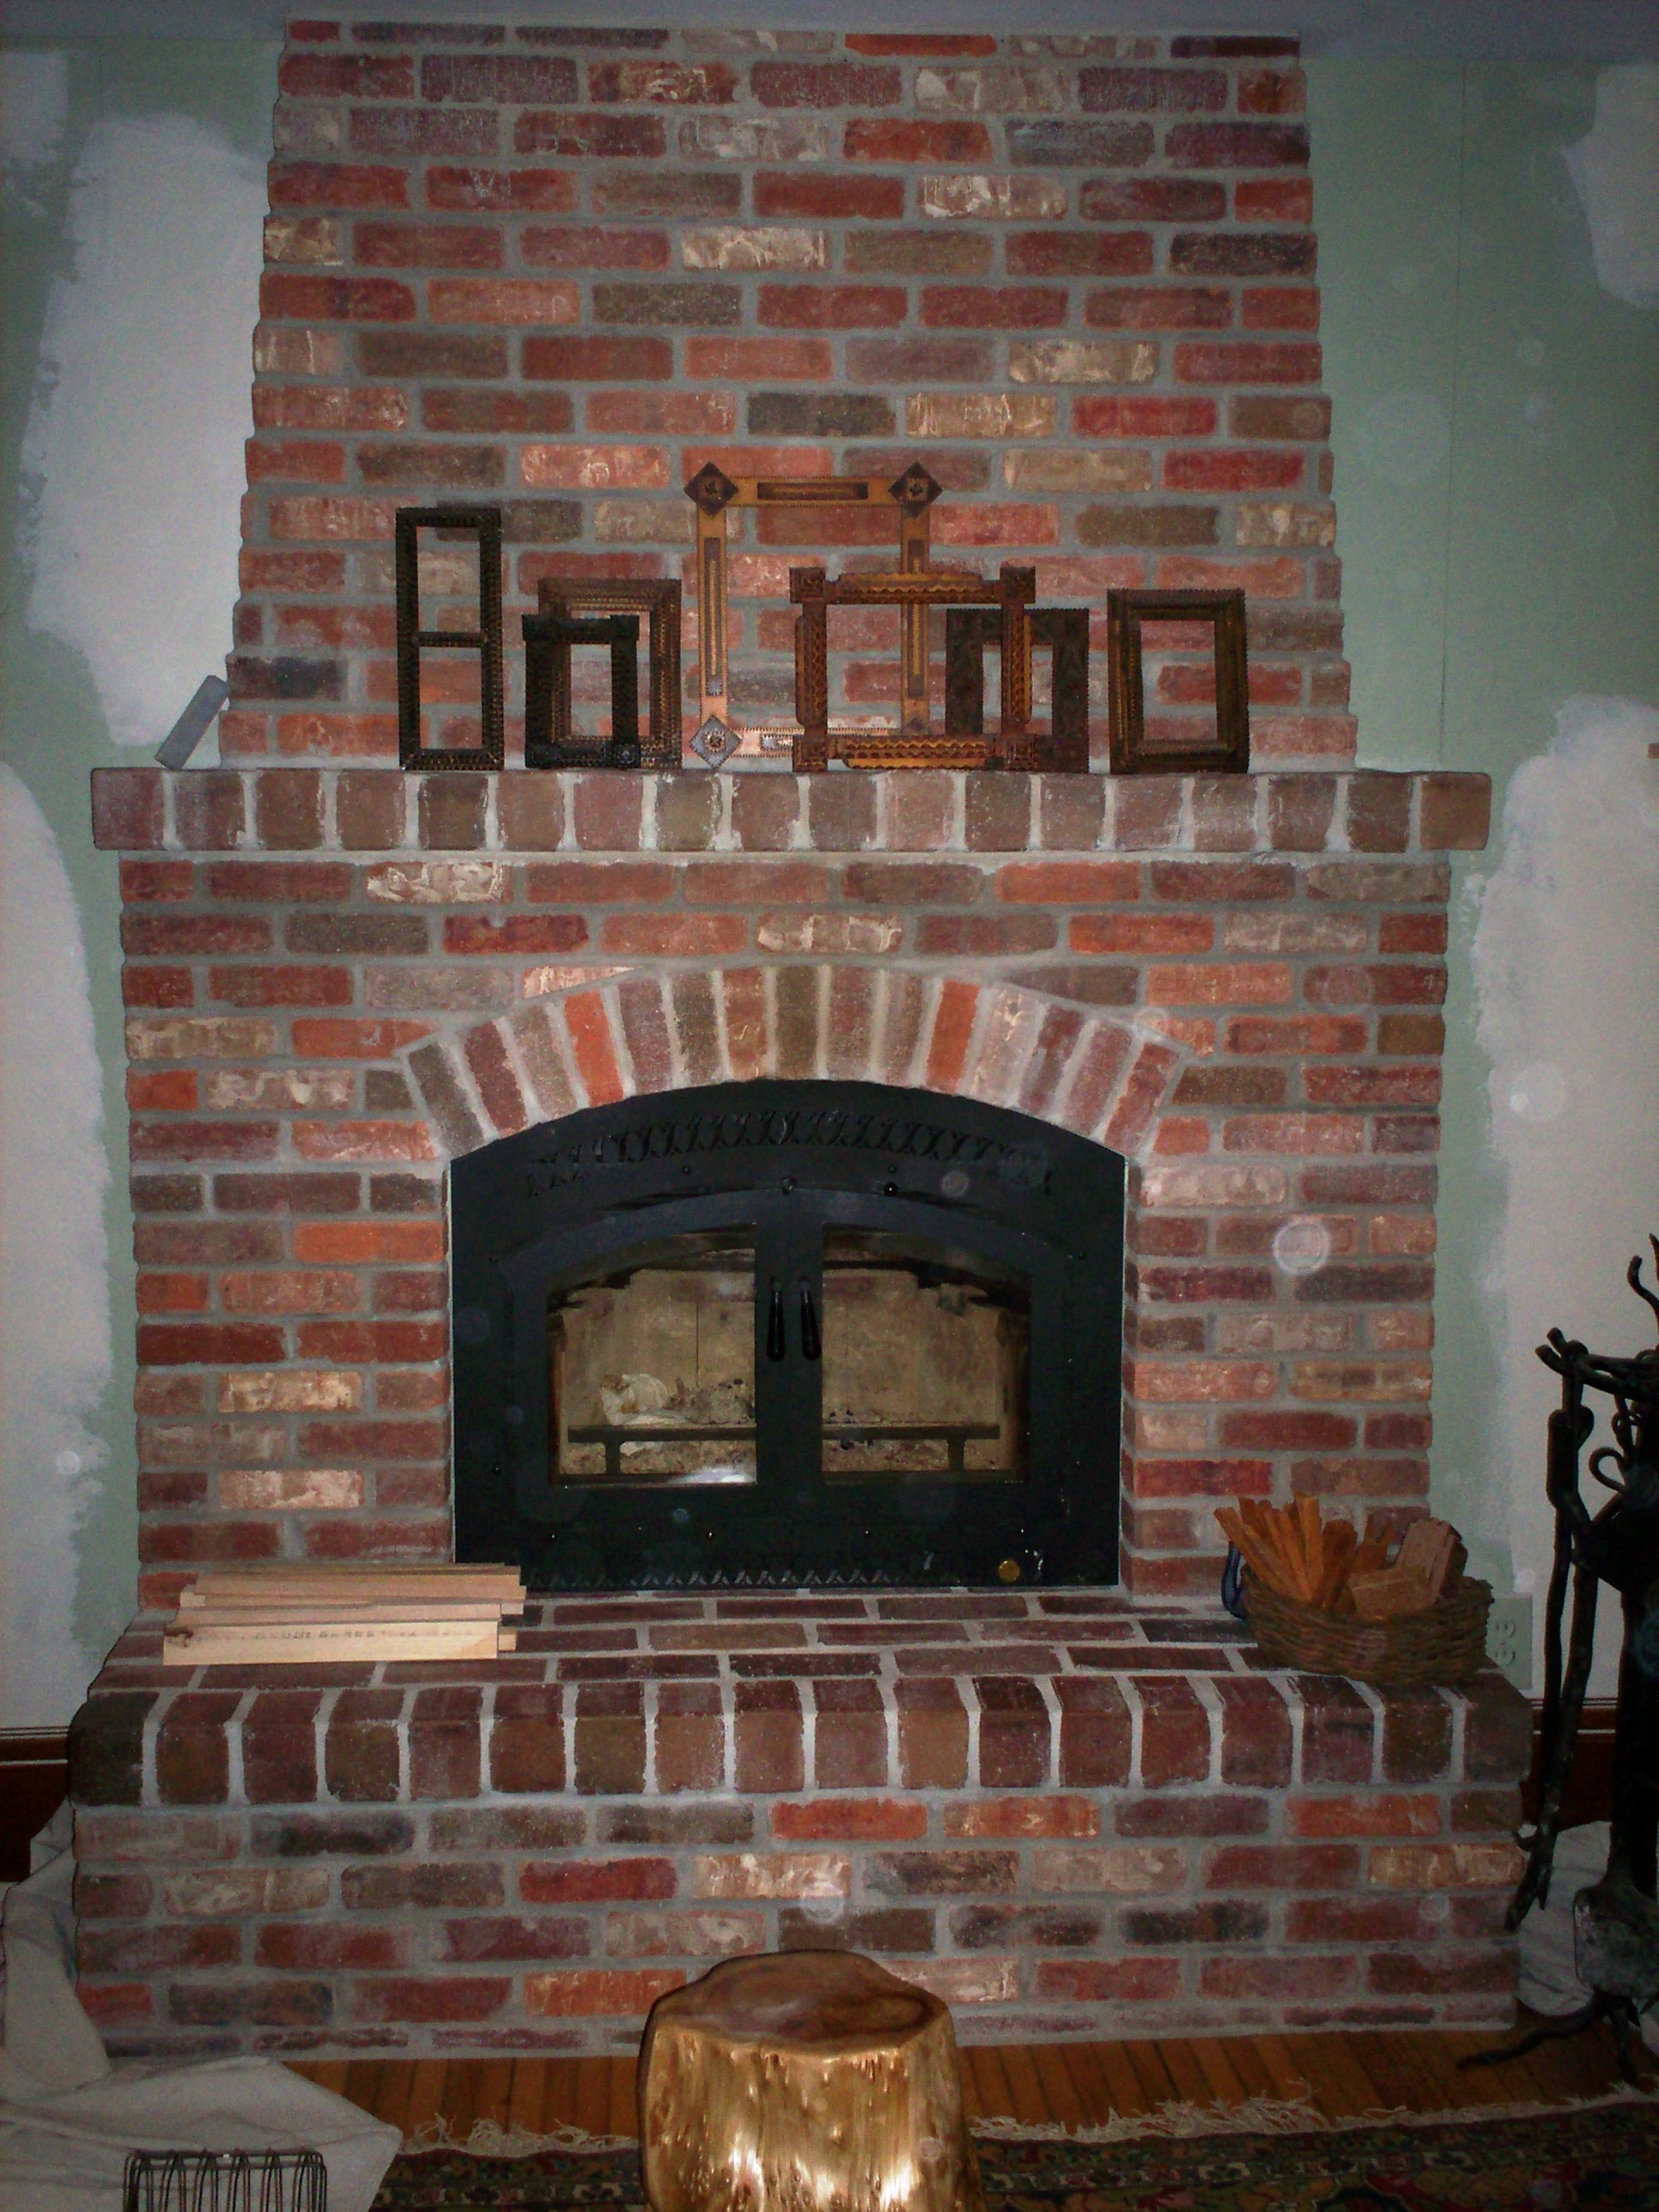 Woodland Stoves and montigo Fireplaces